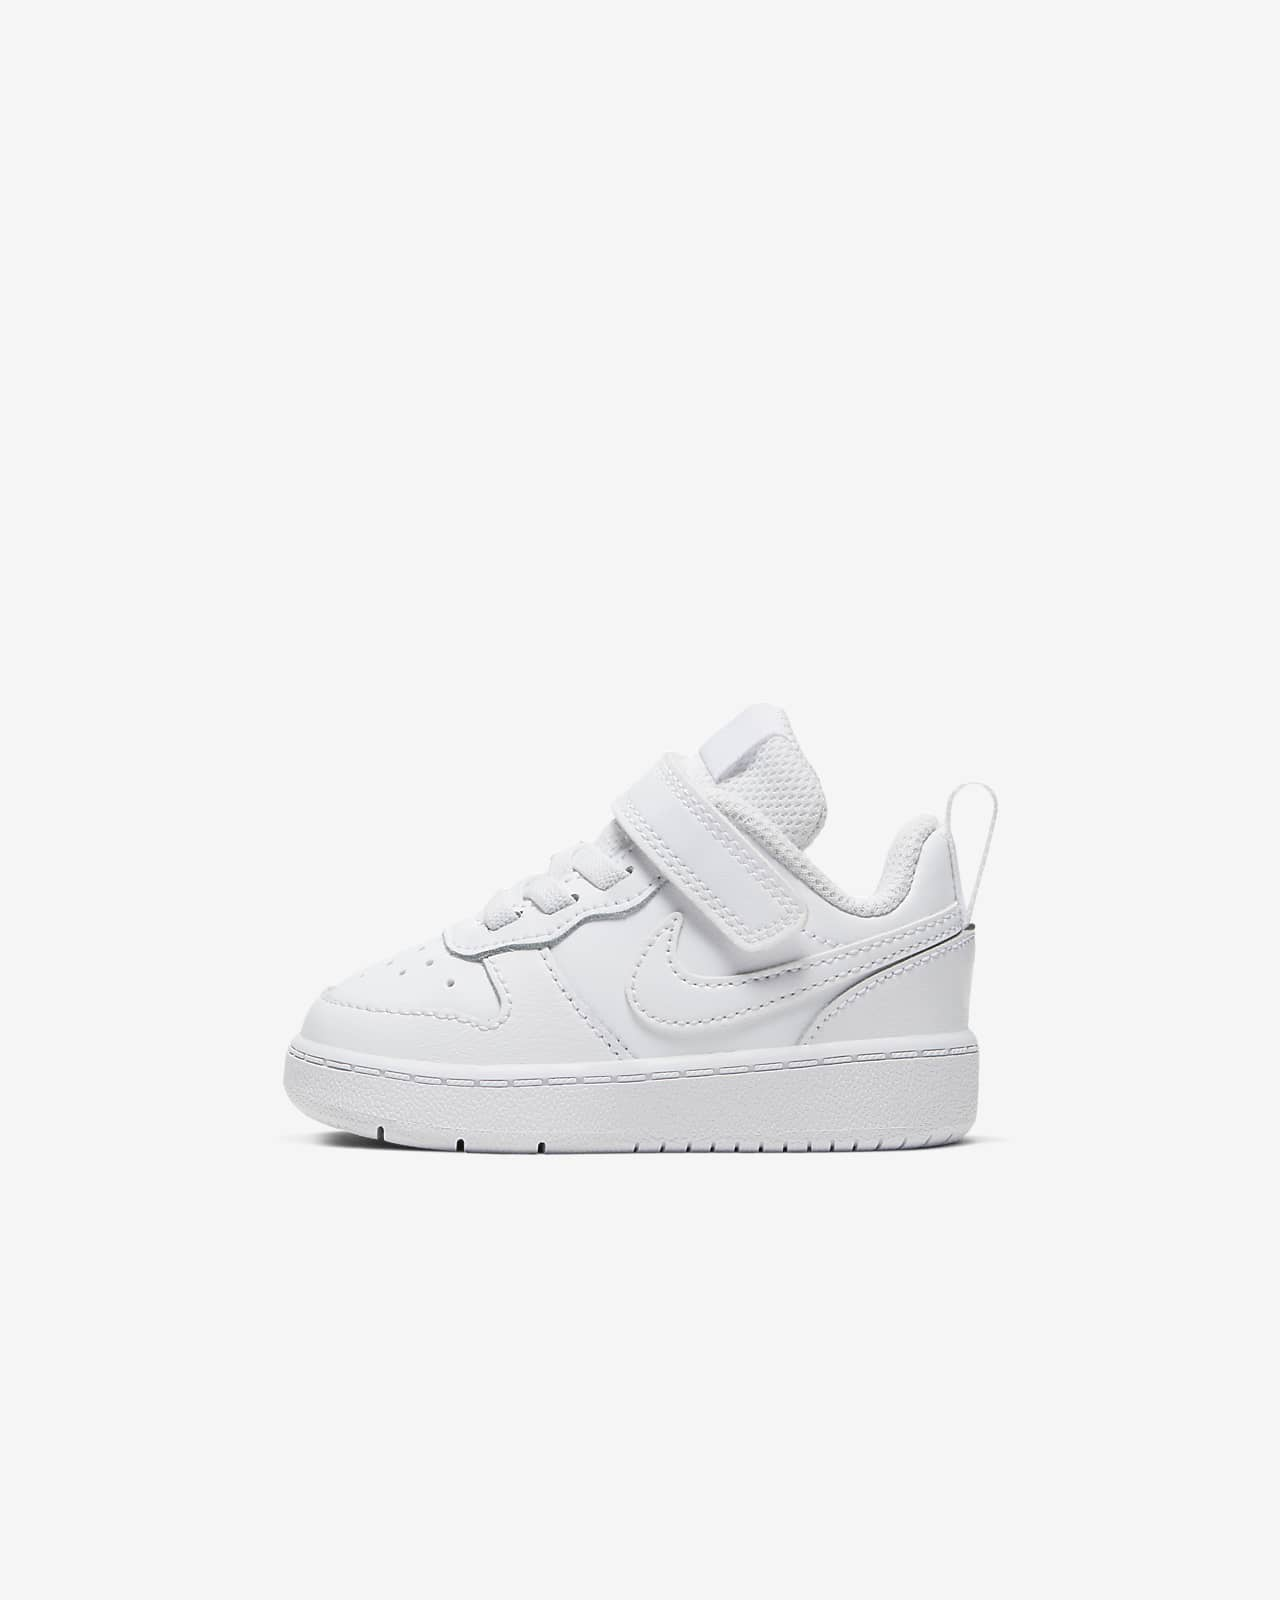 Nike Court Borough Low 2 Baby/Toddler Shoe